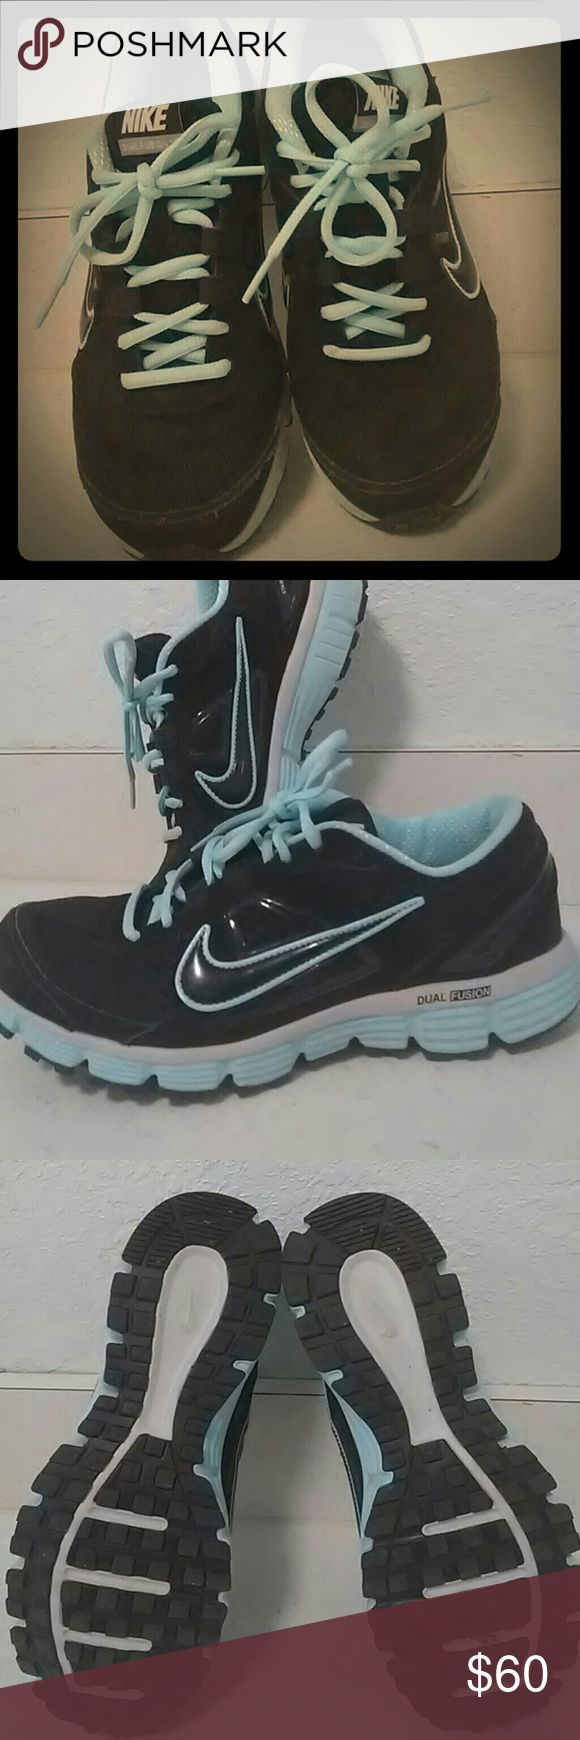 New Nikes Dual Fusion Nikes. Black and tourquoise blue. Worn a few times...love them but have sooo many pairs that I wear more often. These are super cute!!!! Nike dual fusion Shoes Athletic Shoes